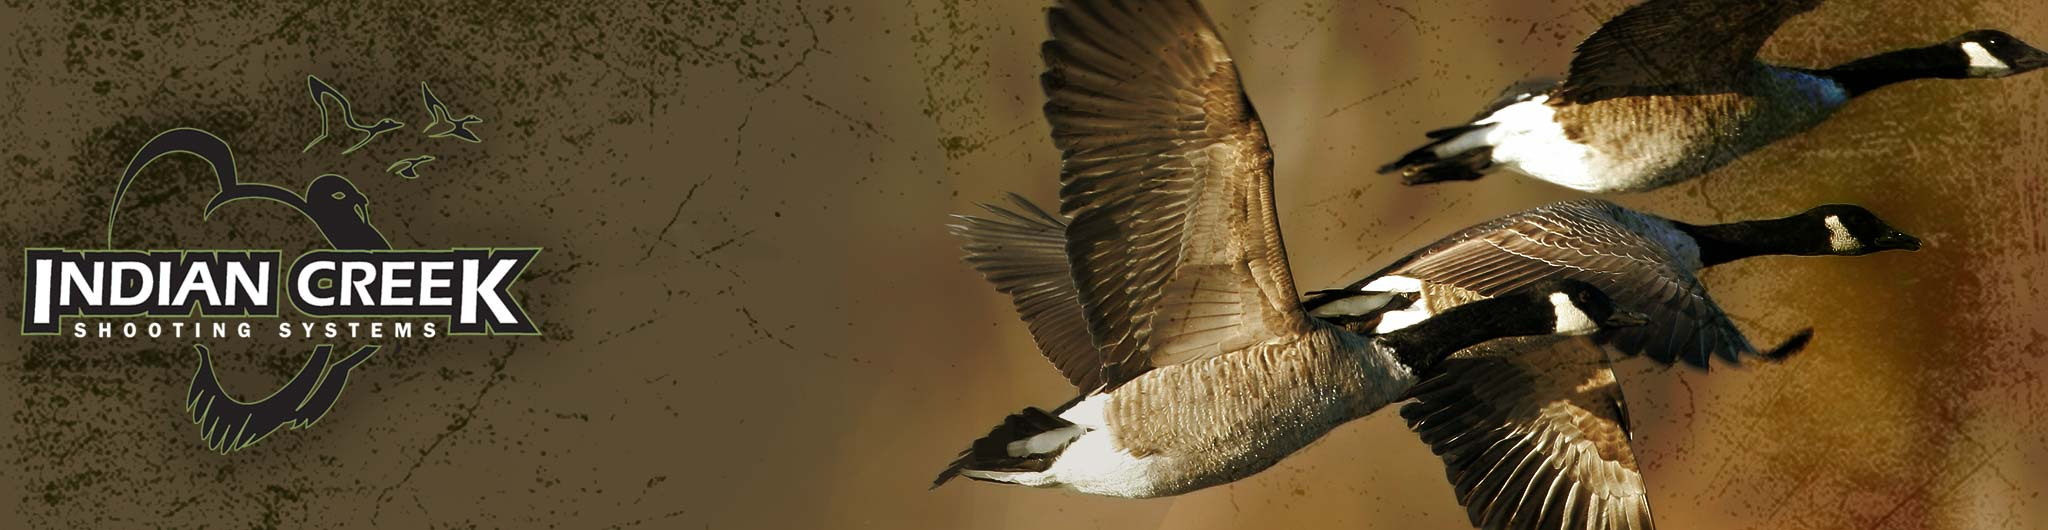 waterfowl-header-image.jpg